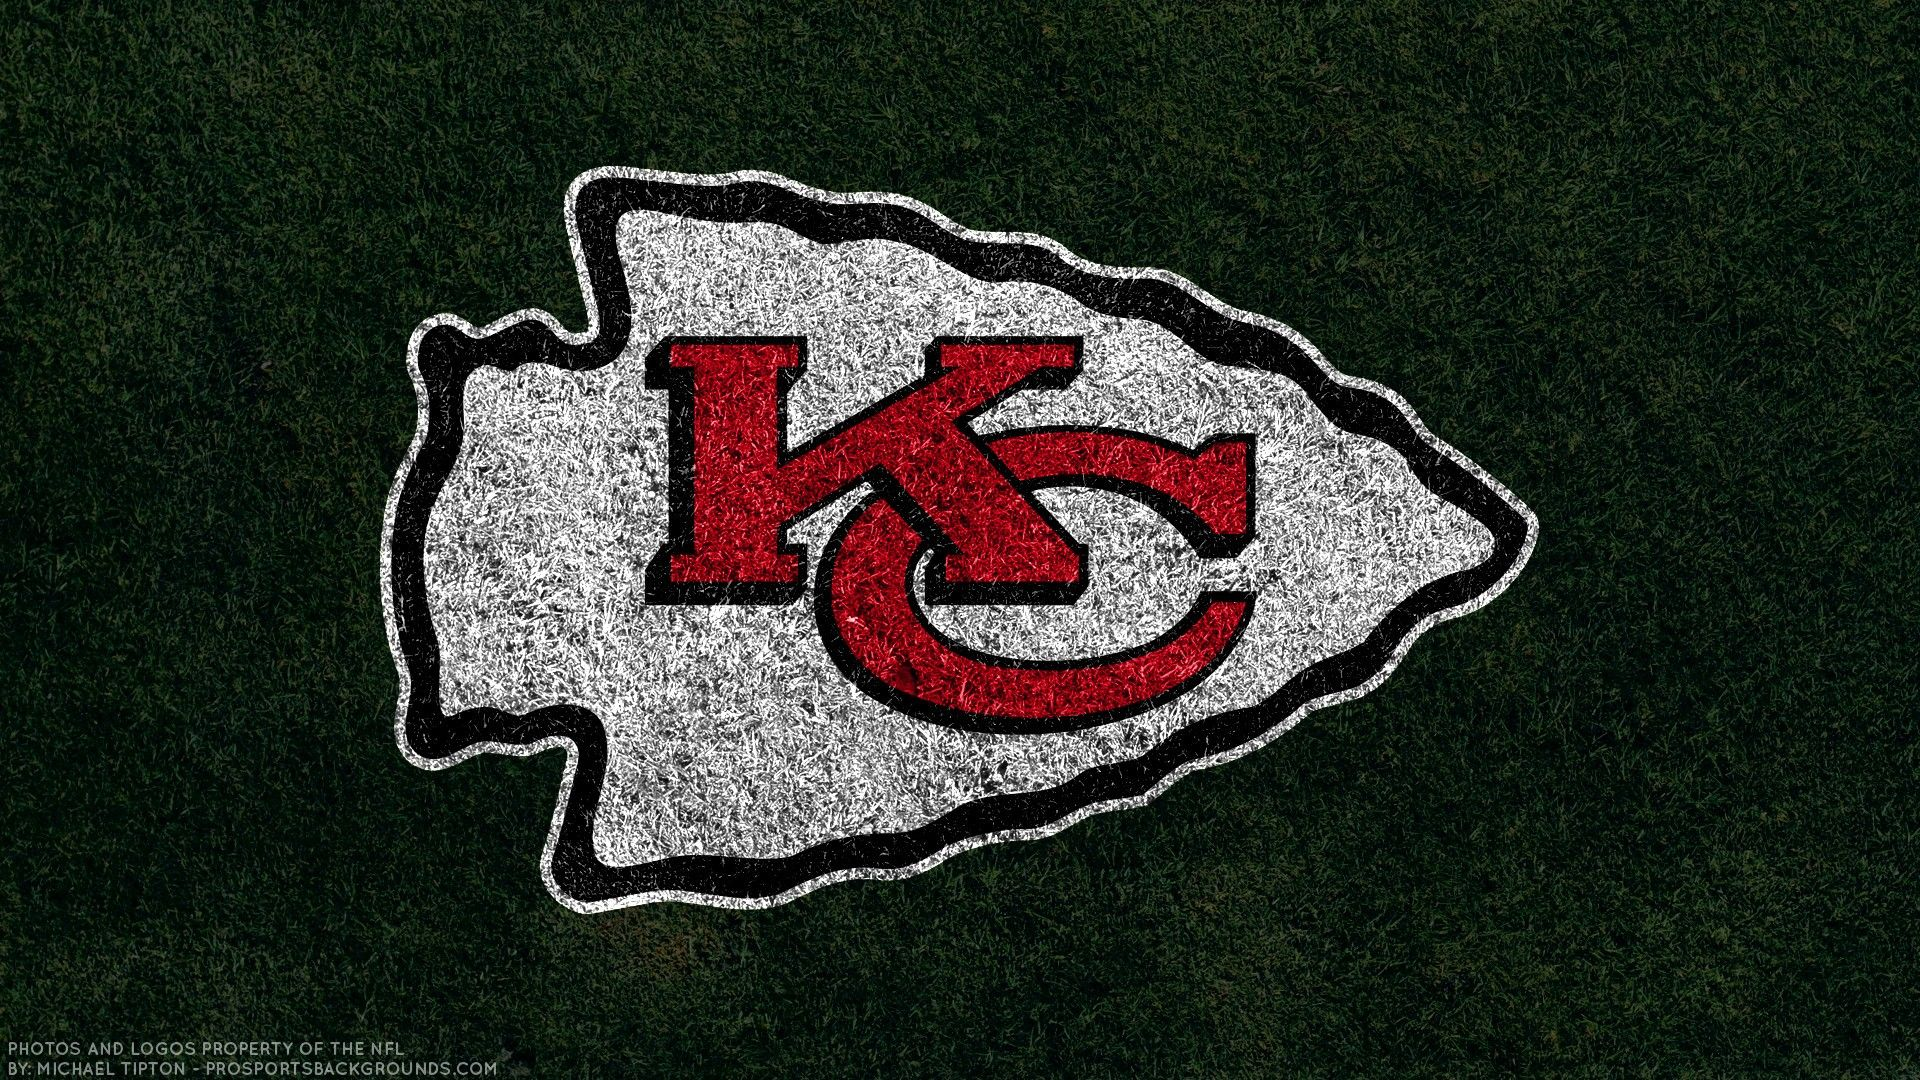 Iphone Wallpaper From Chiefs Mobile App Kansas City Chiefs Logo Kansas City Chiefs Football Kansas City Chiefs